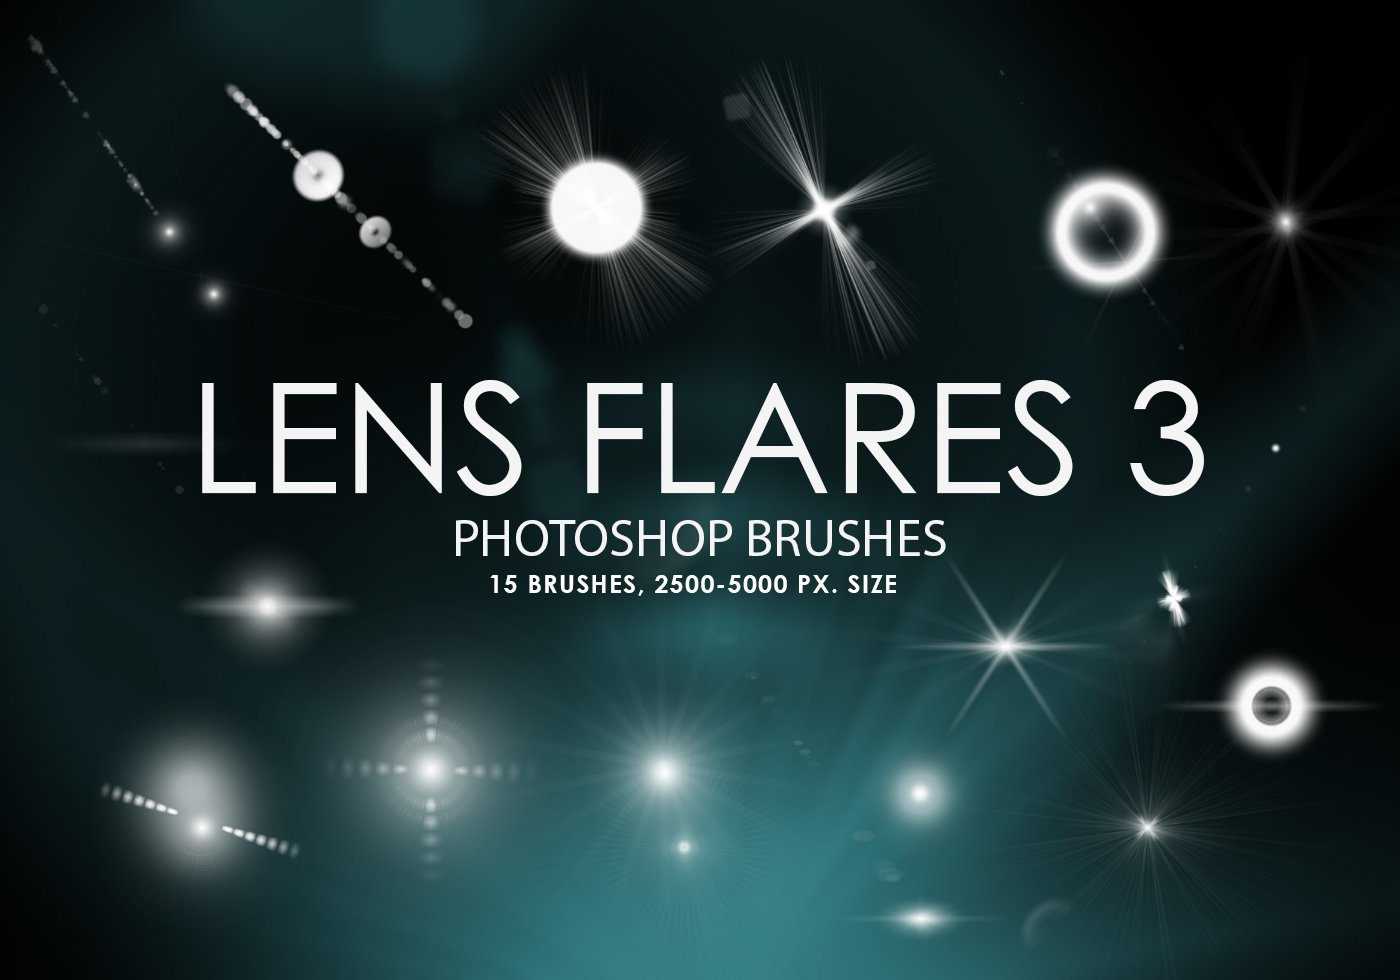 Star brushes for photoshop cs5 free download